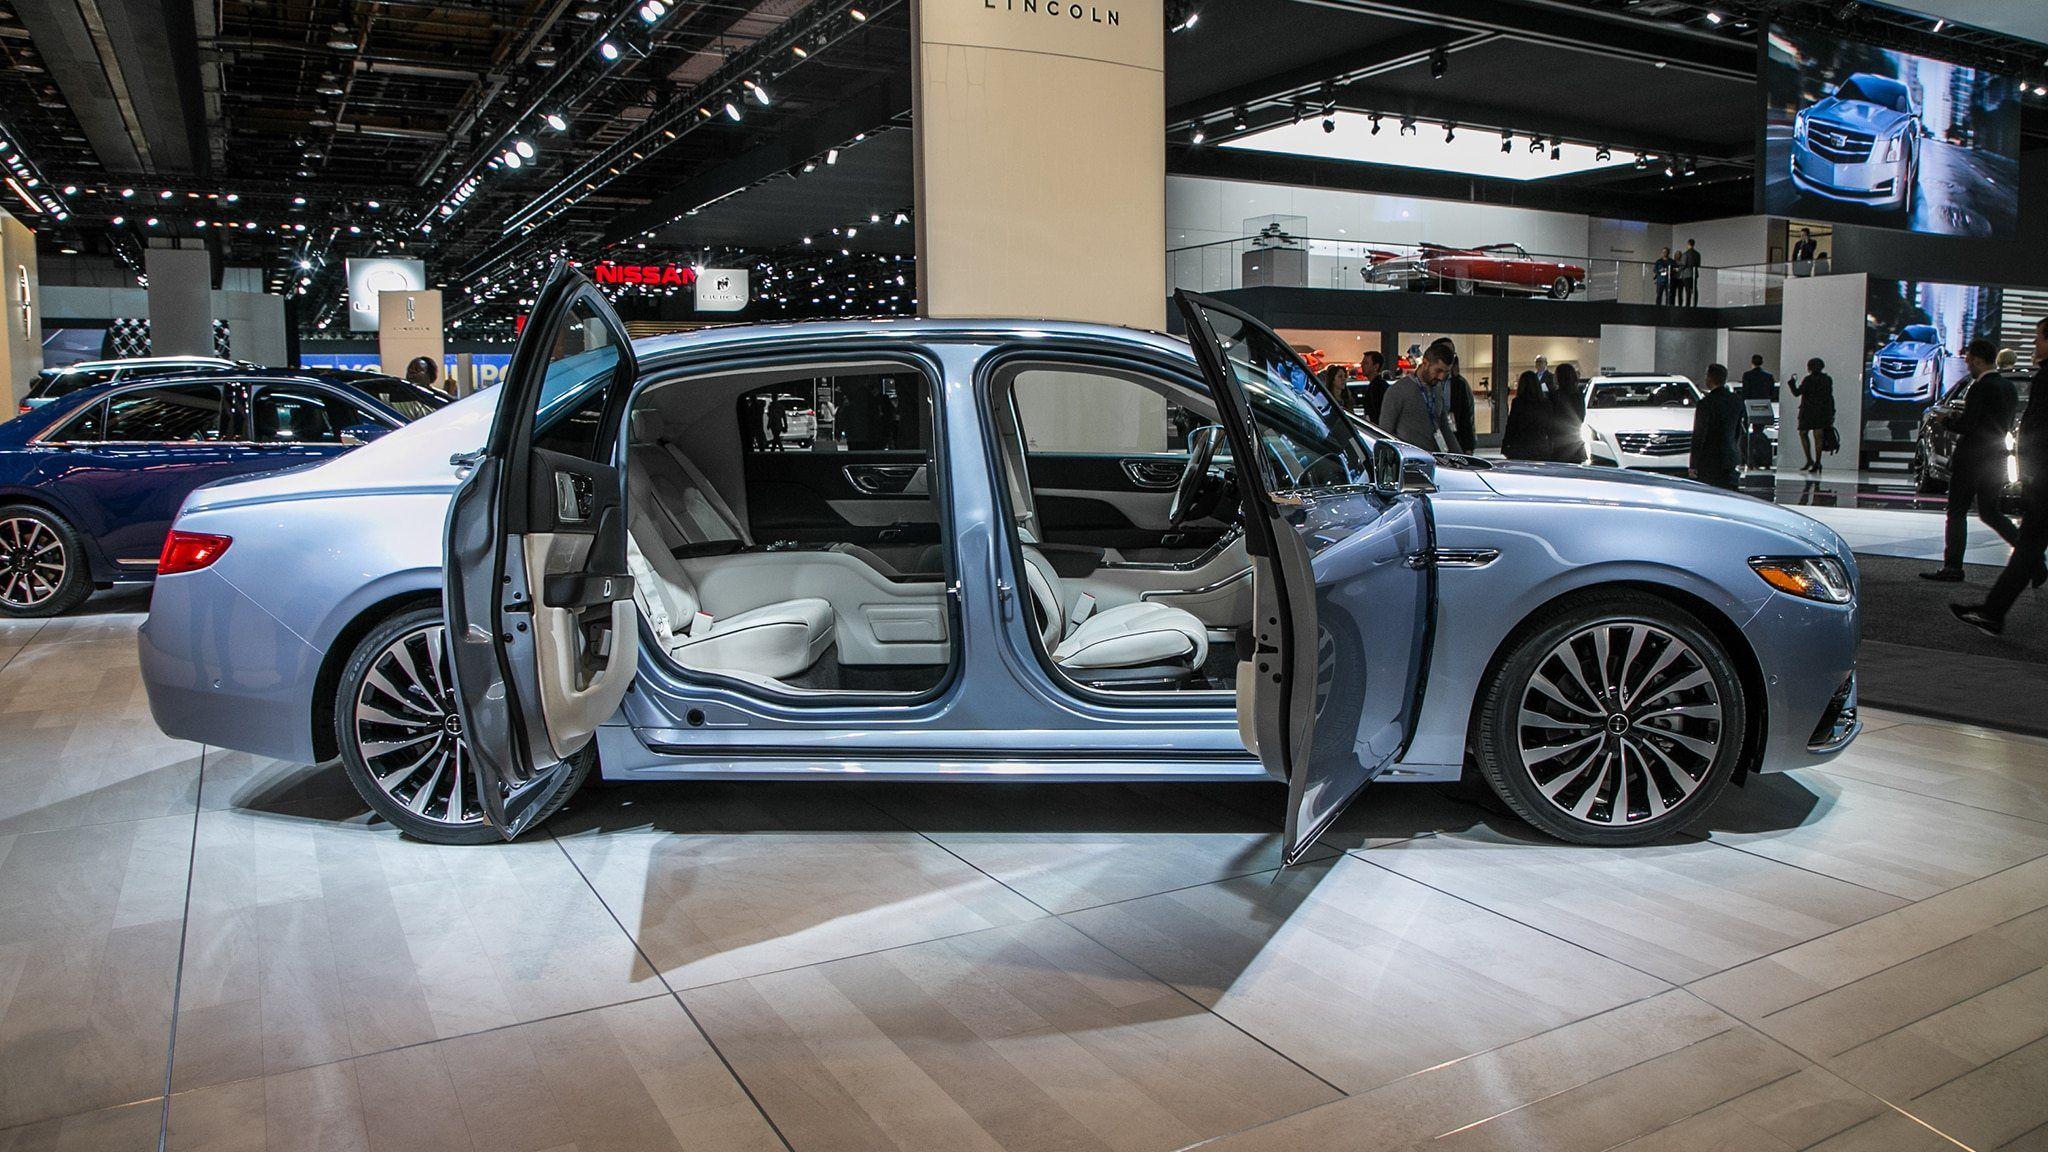 2021 Lincoln Town Car Release Date